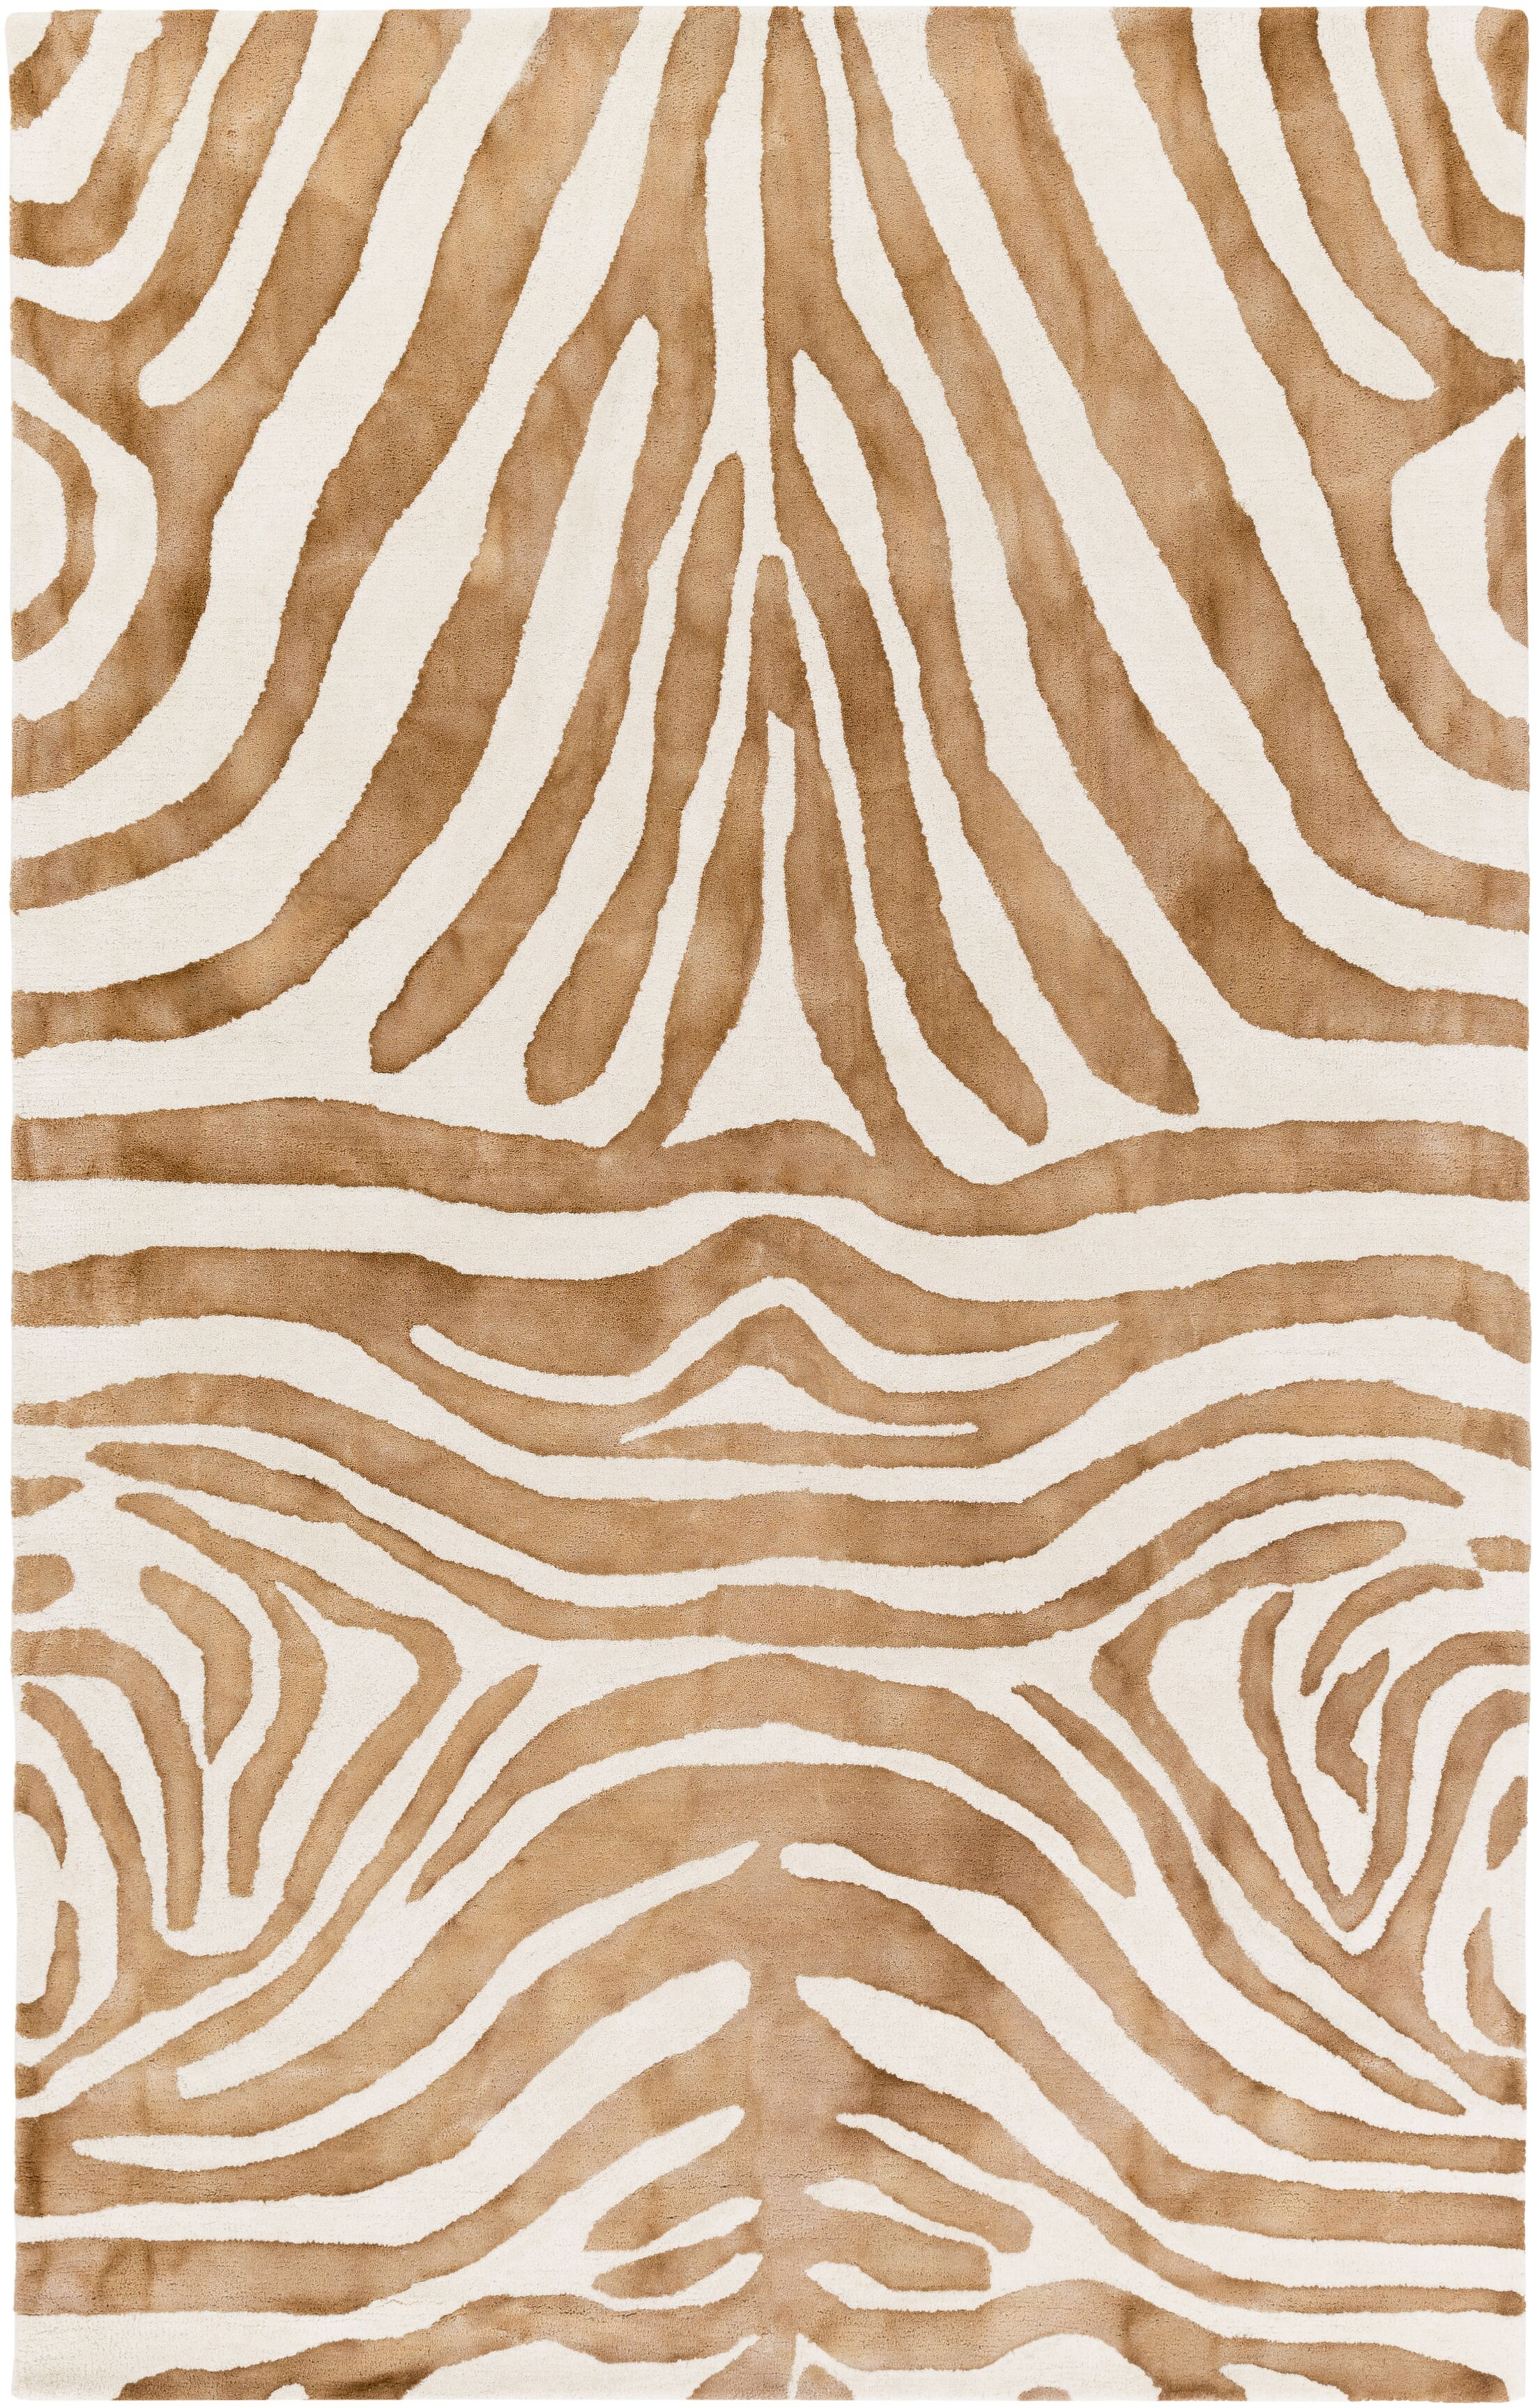 Petunia Hand-Tufted Brown Area Rug Rug Size: Rectangle 4' x 6'